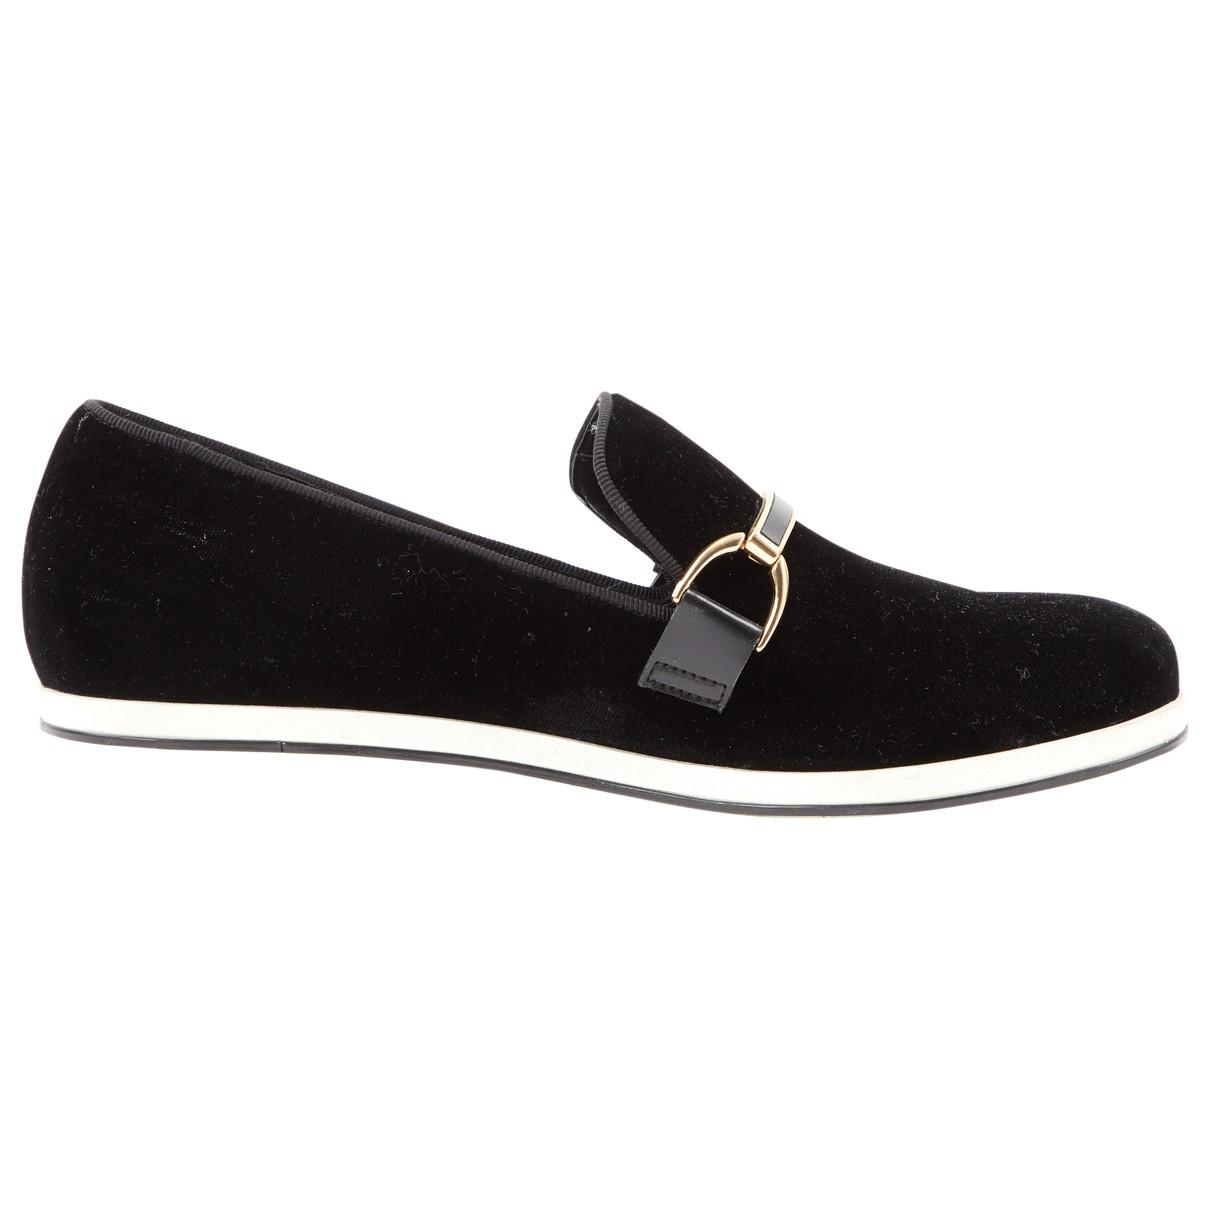 Pre-owned - Velvet flats Stella McCartney Countdown Package For Sale QGykRstYo